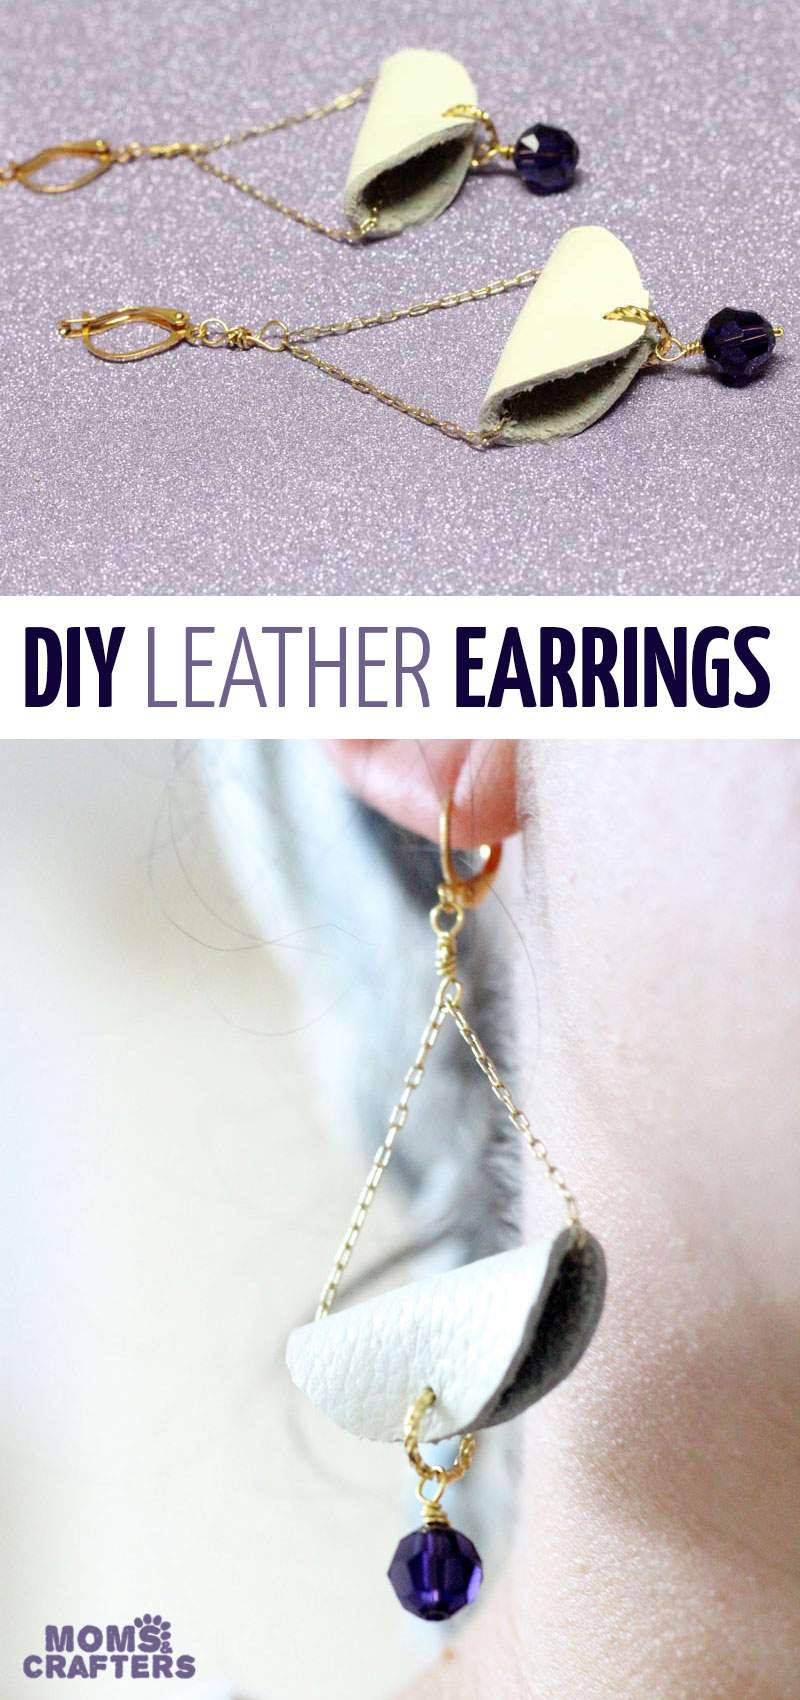 Make your own super cool DIY earrings! These easy dangle earrings tutorial have a slightly boho feel. This handmade leather and bead dangle earrings tutorial is an easy jewelry making craft idea for beginners. #earrings #jewelrymaking #momsandcrafters